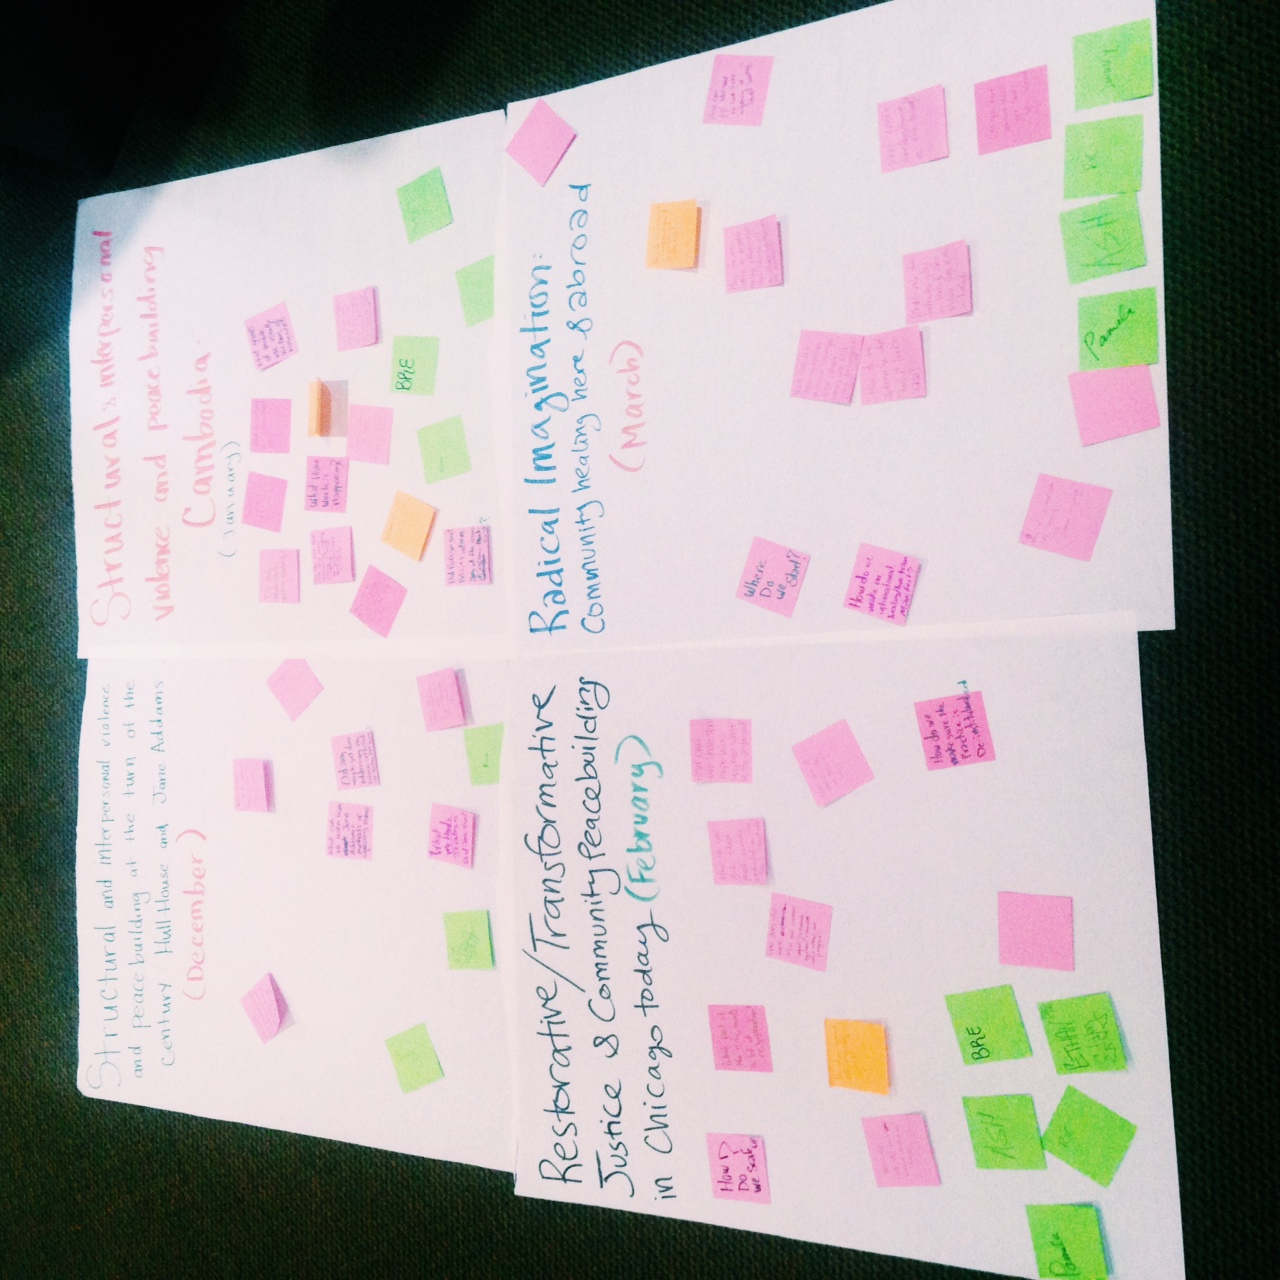 Posters for each of the for four content areas where Peace Fellows posted questions about the topic.